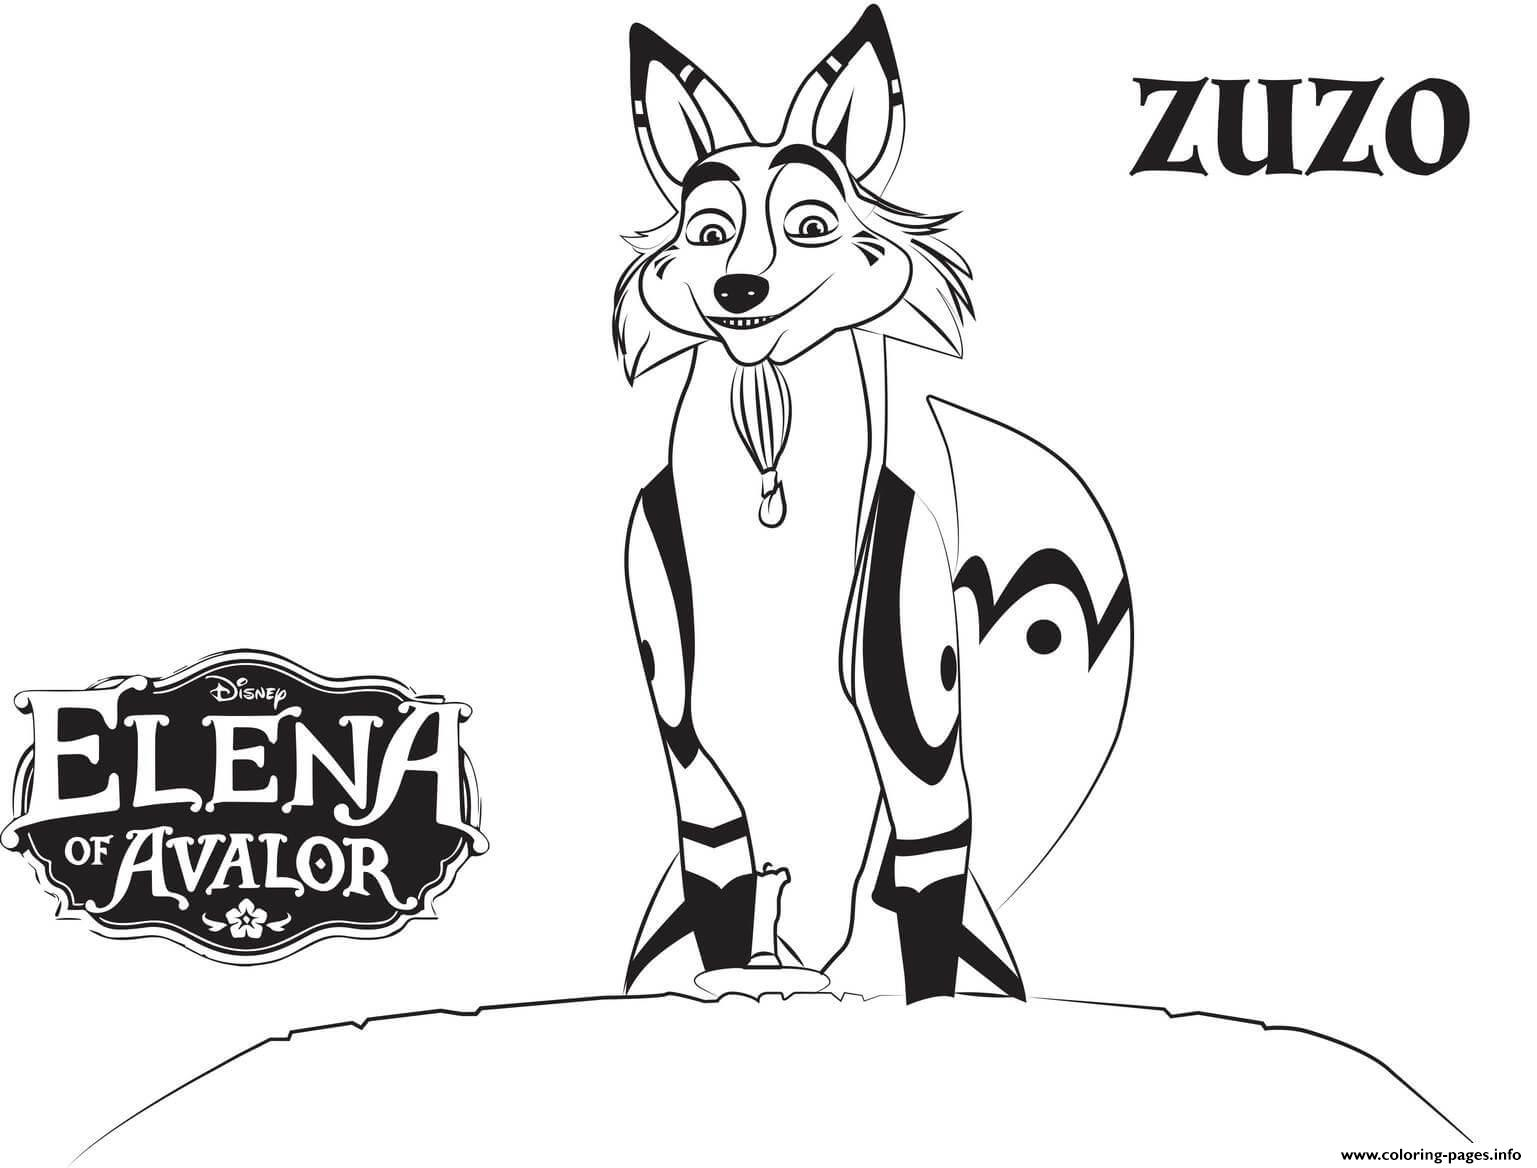 Elena Of Avalor Zuzo Disney Coloring Pages Printable